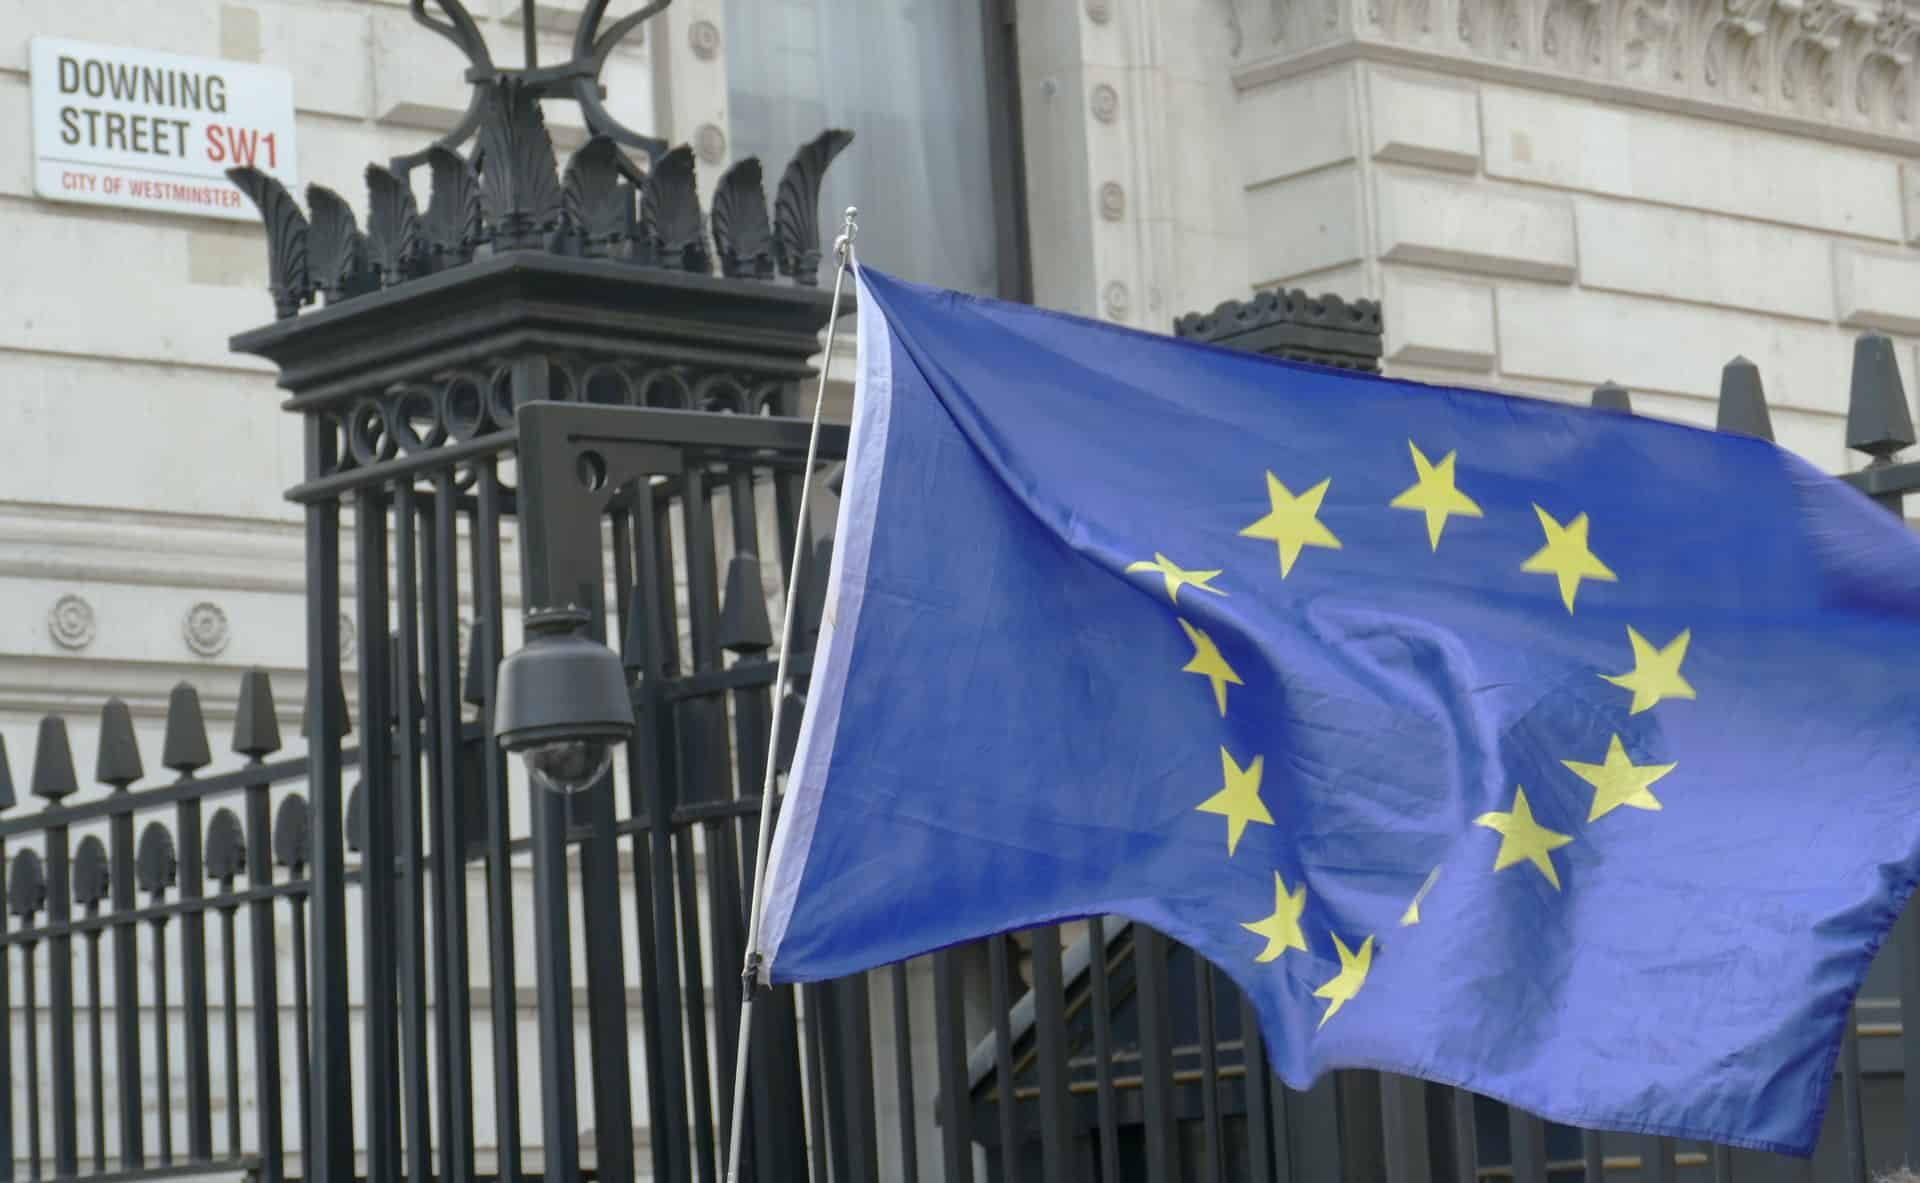 EU flag Downing Street